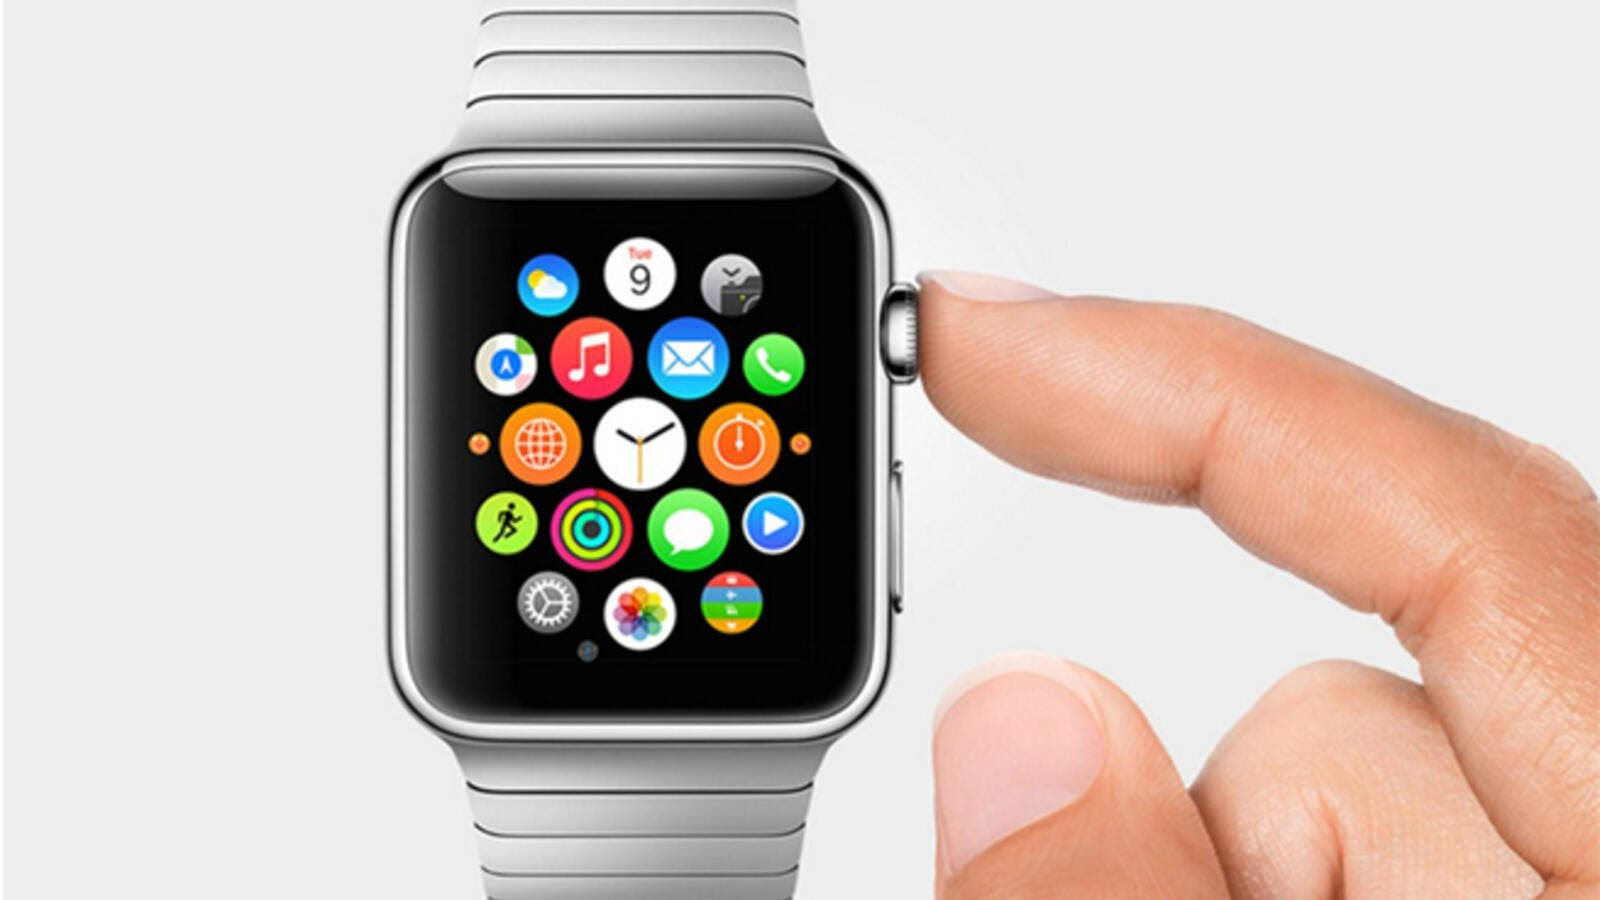 The Apple Watch would detect a change in the wearer's body or in the environment around it and then send a signal to the phone. (File photo)